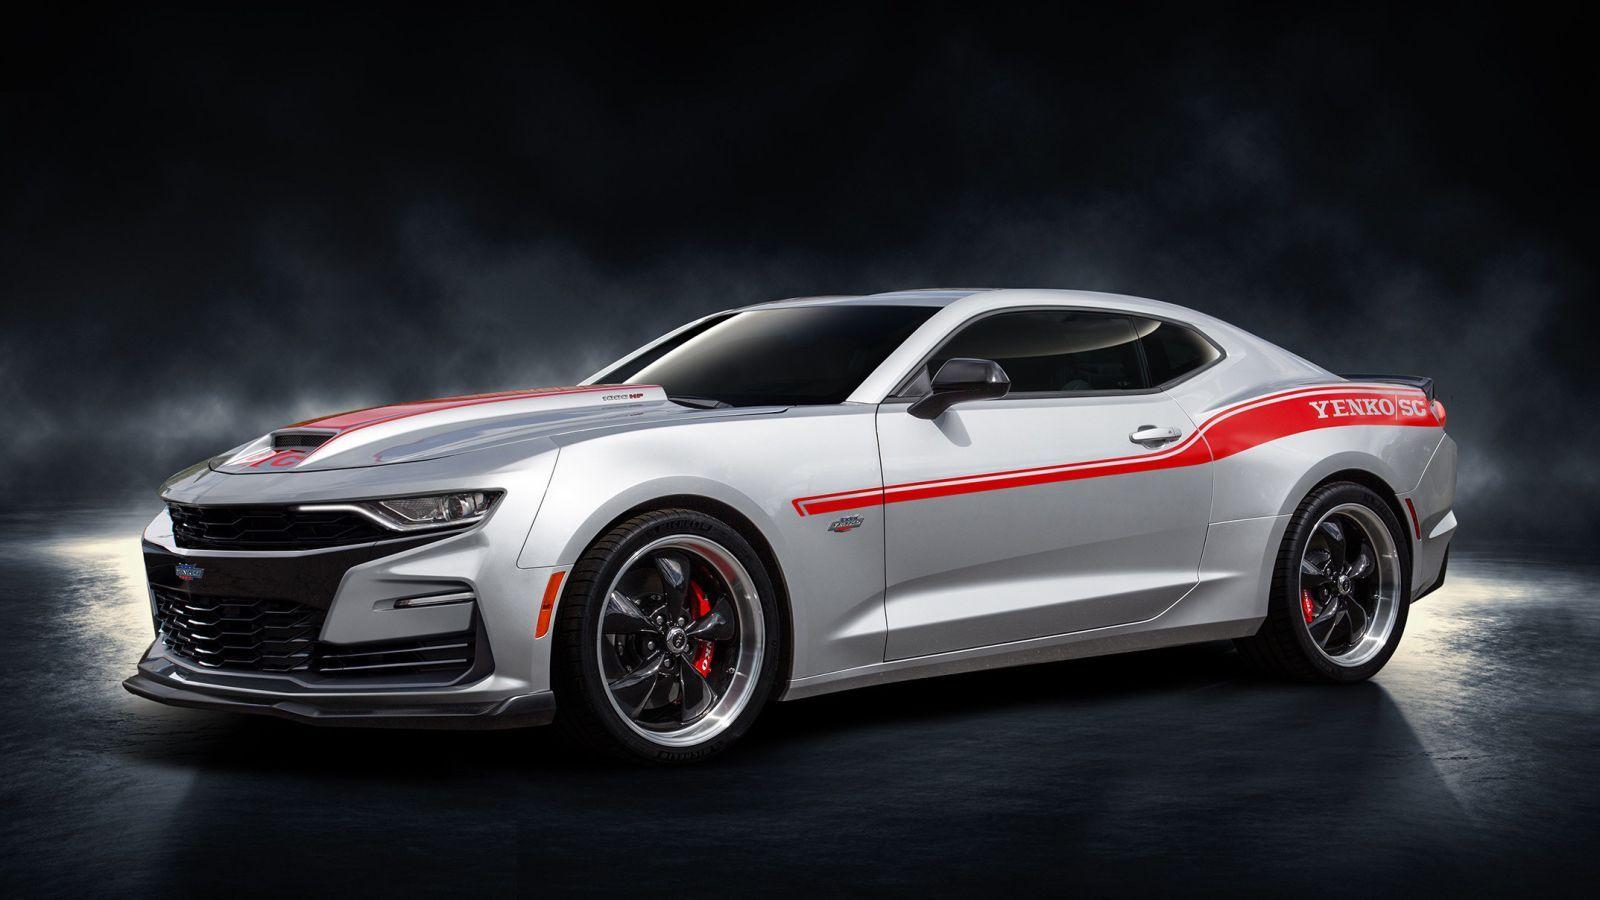 The 2019 Yenko Camaro Is A 1 000 Hp Monster You Can Buy At The Dealership Yenko Camaro Camaro Chevrolet Camaro